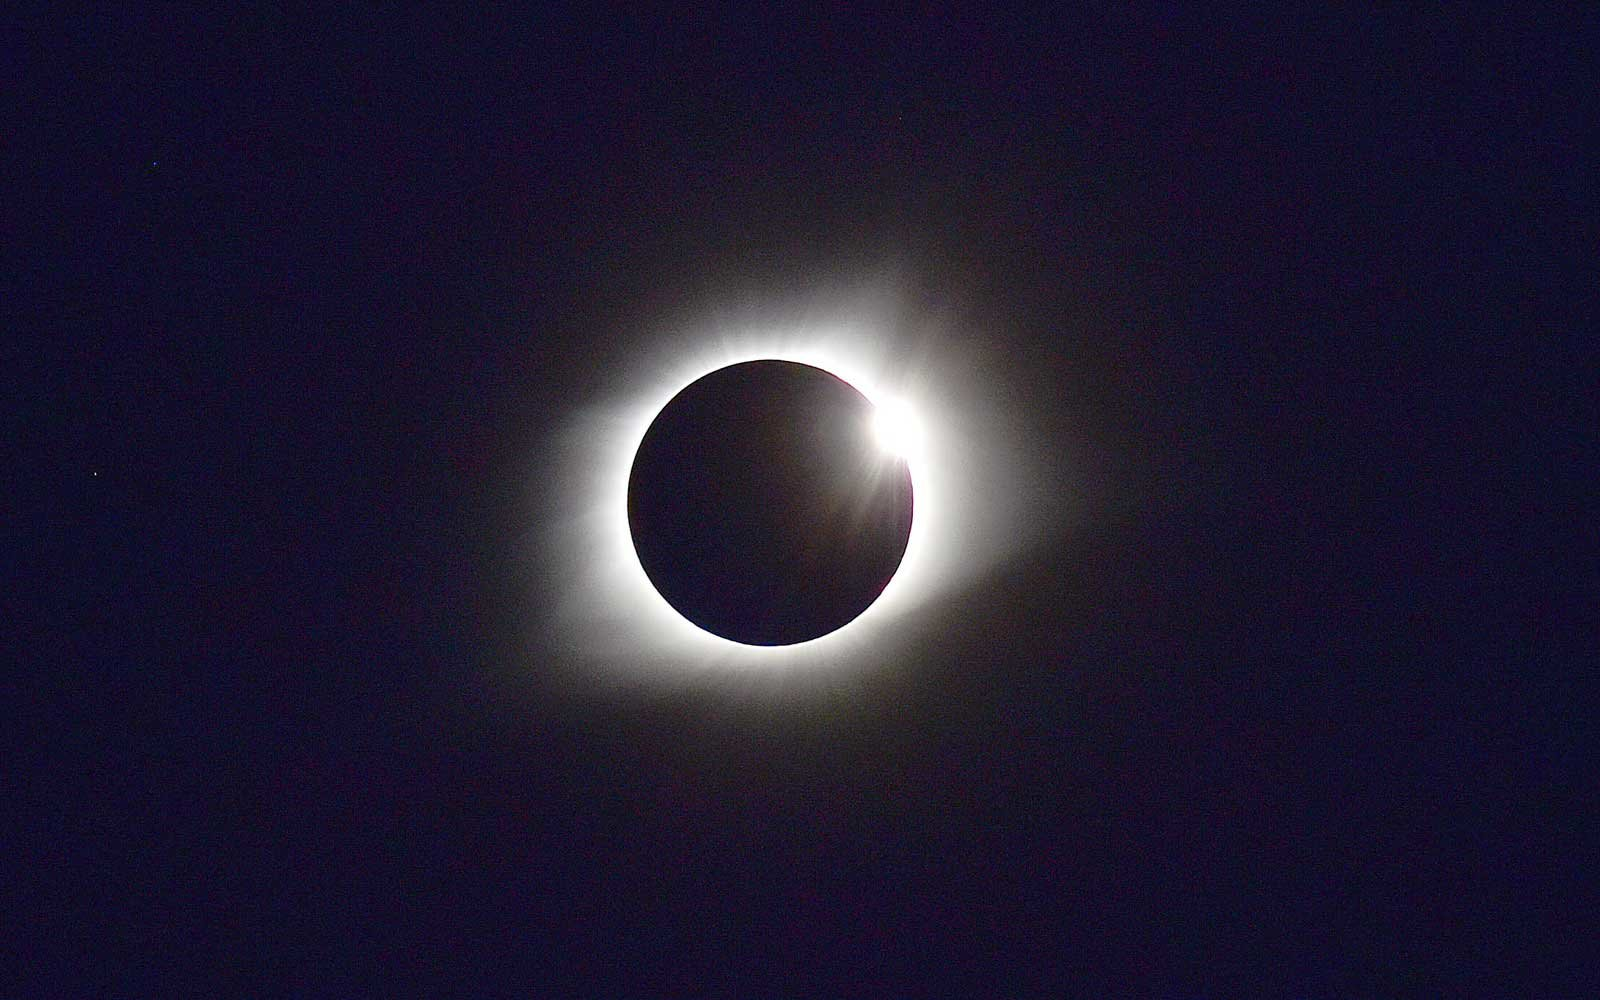 Total Solar Eclipse Path Of Totality On July 2 2019 And December 14